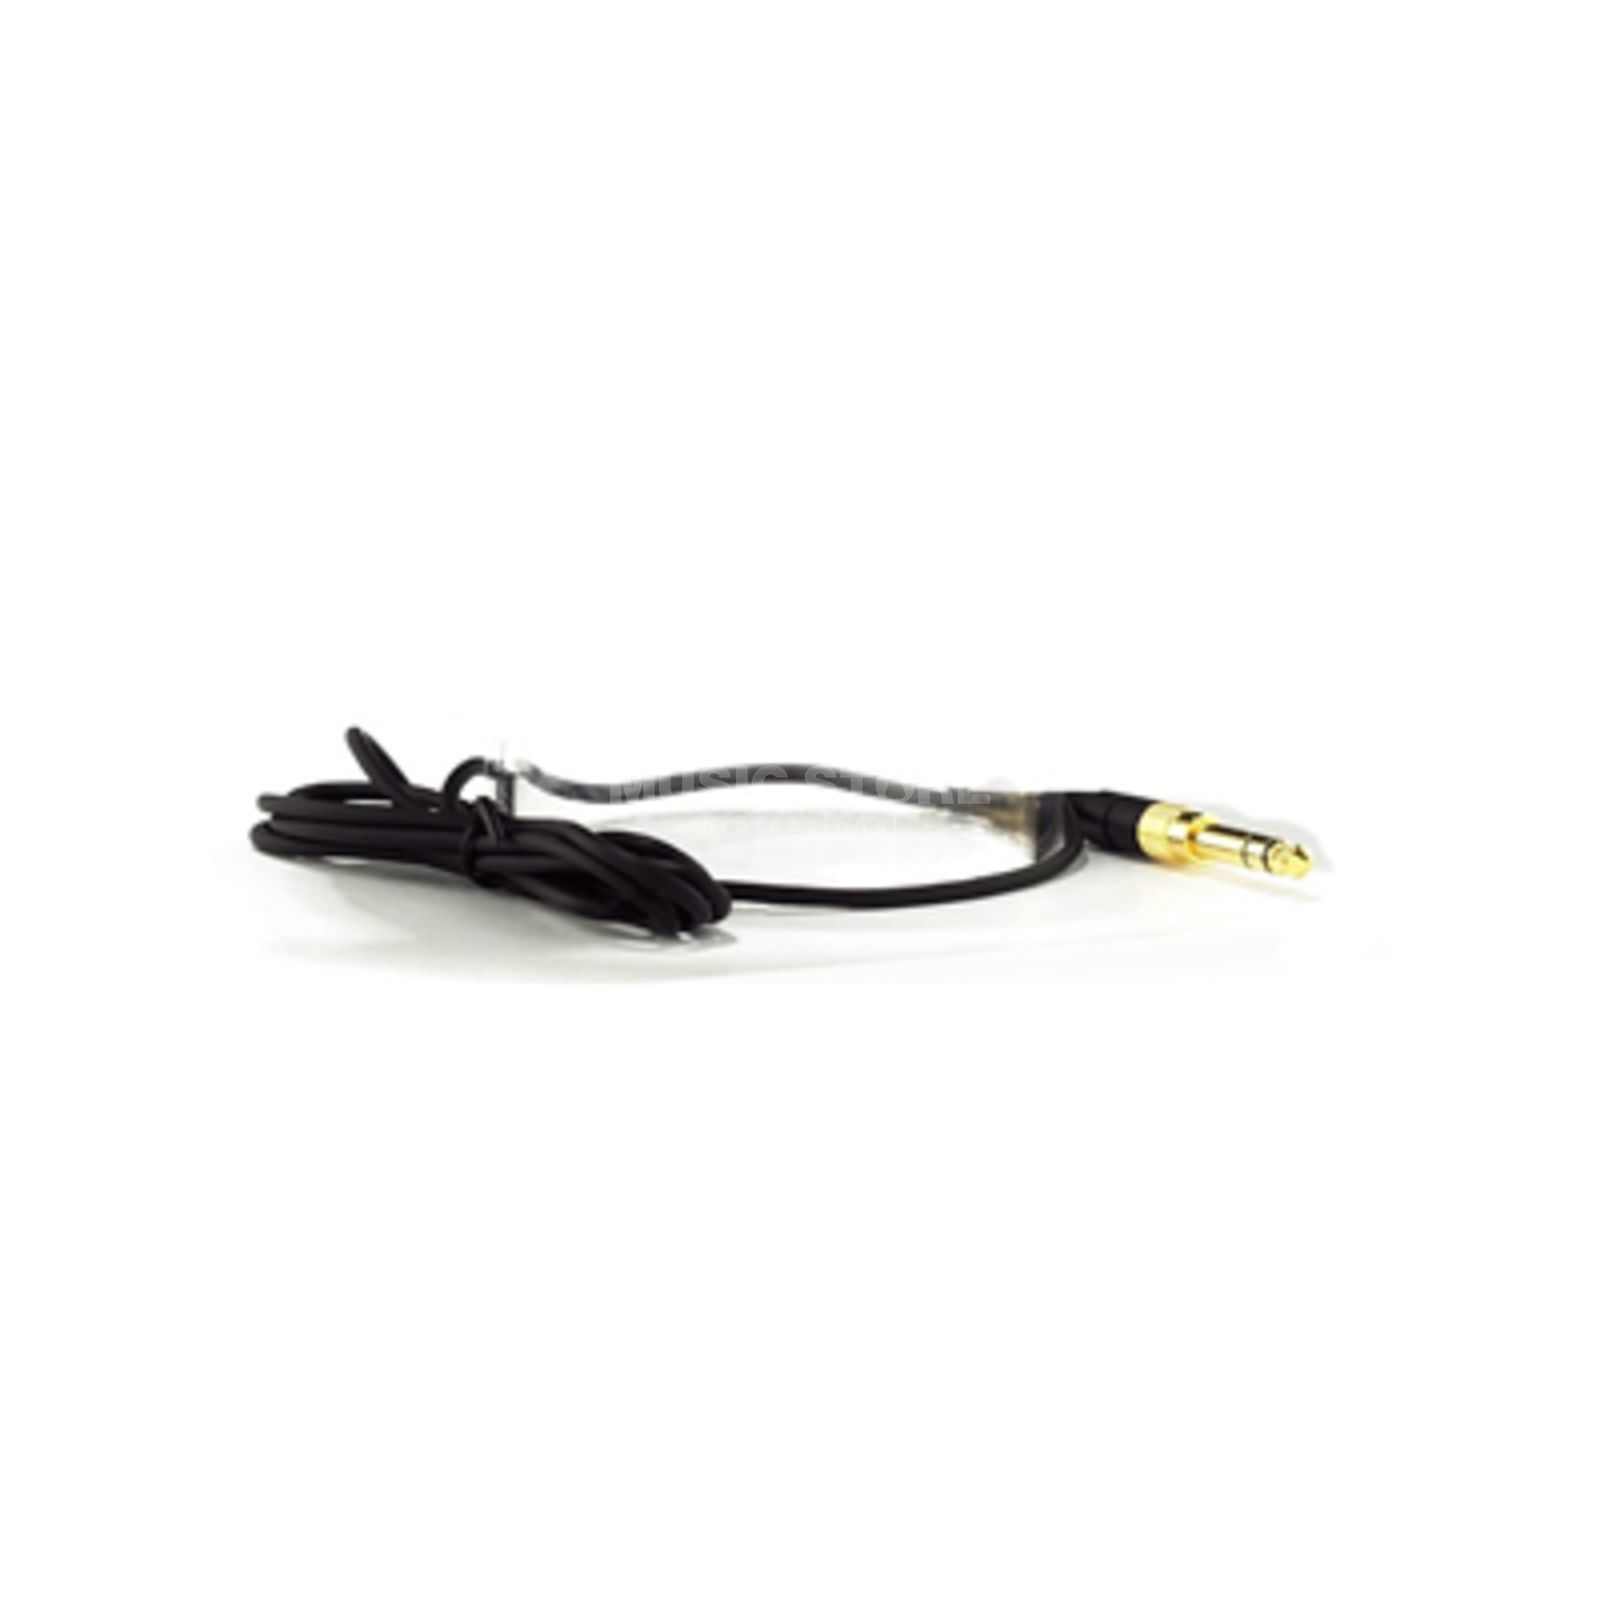 AKG Replacement Cable for AKG K-181 DJ EAK0110E0289 1.8m Изображение товара